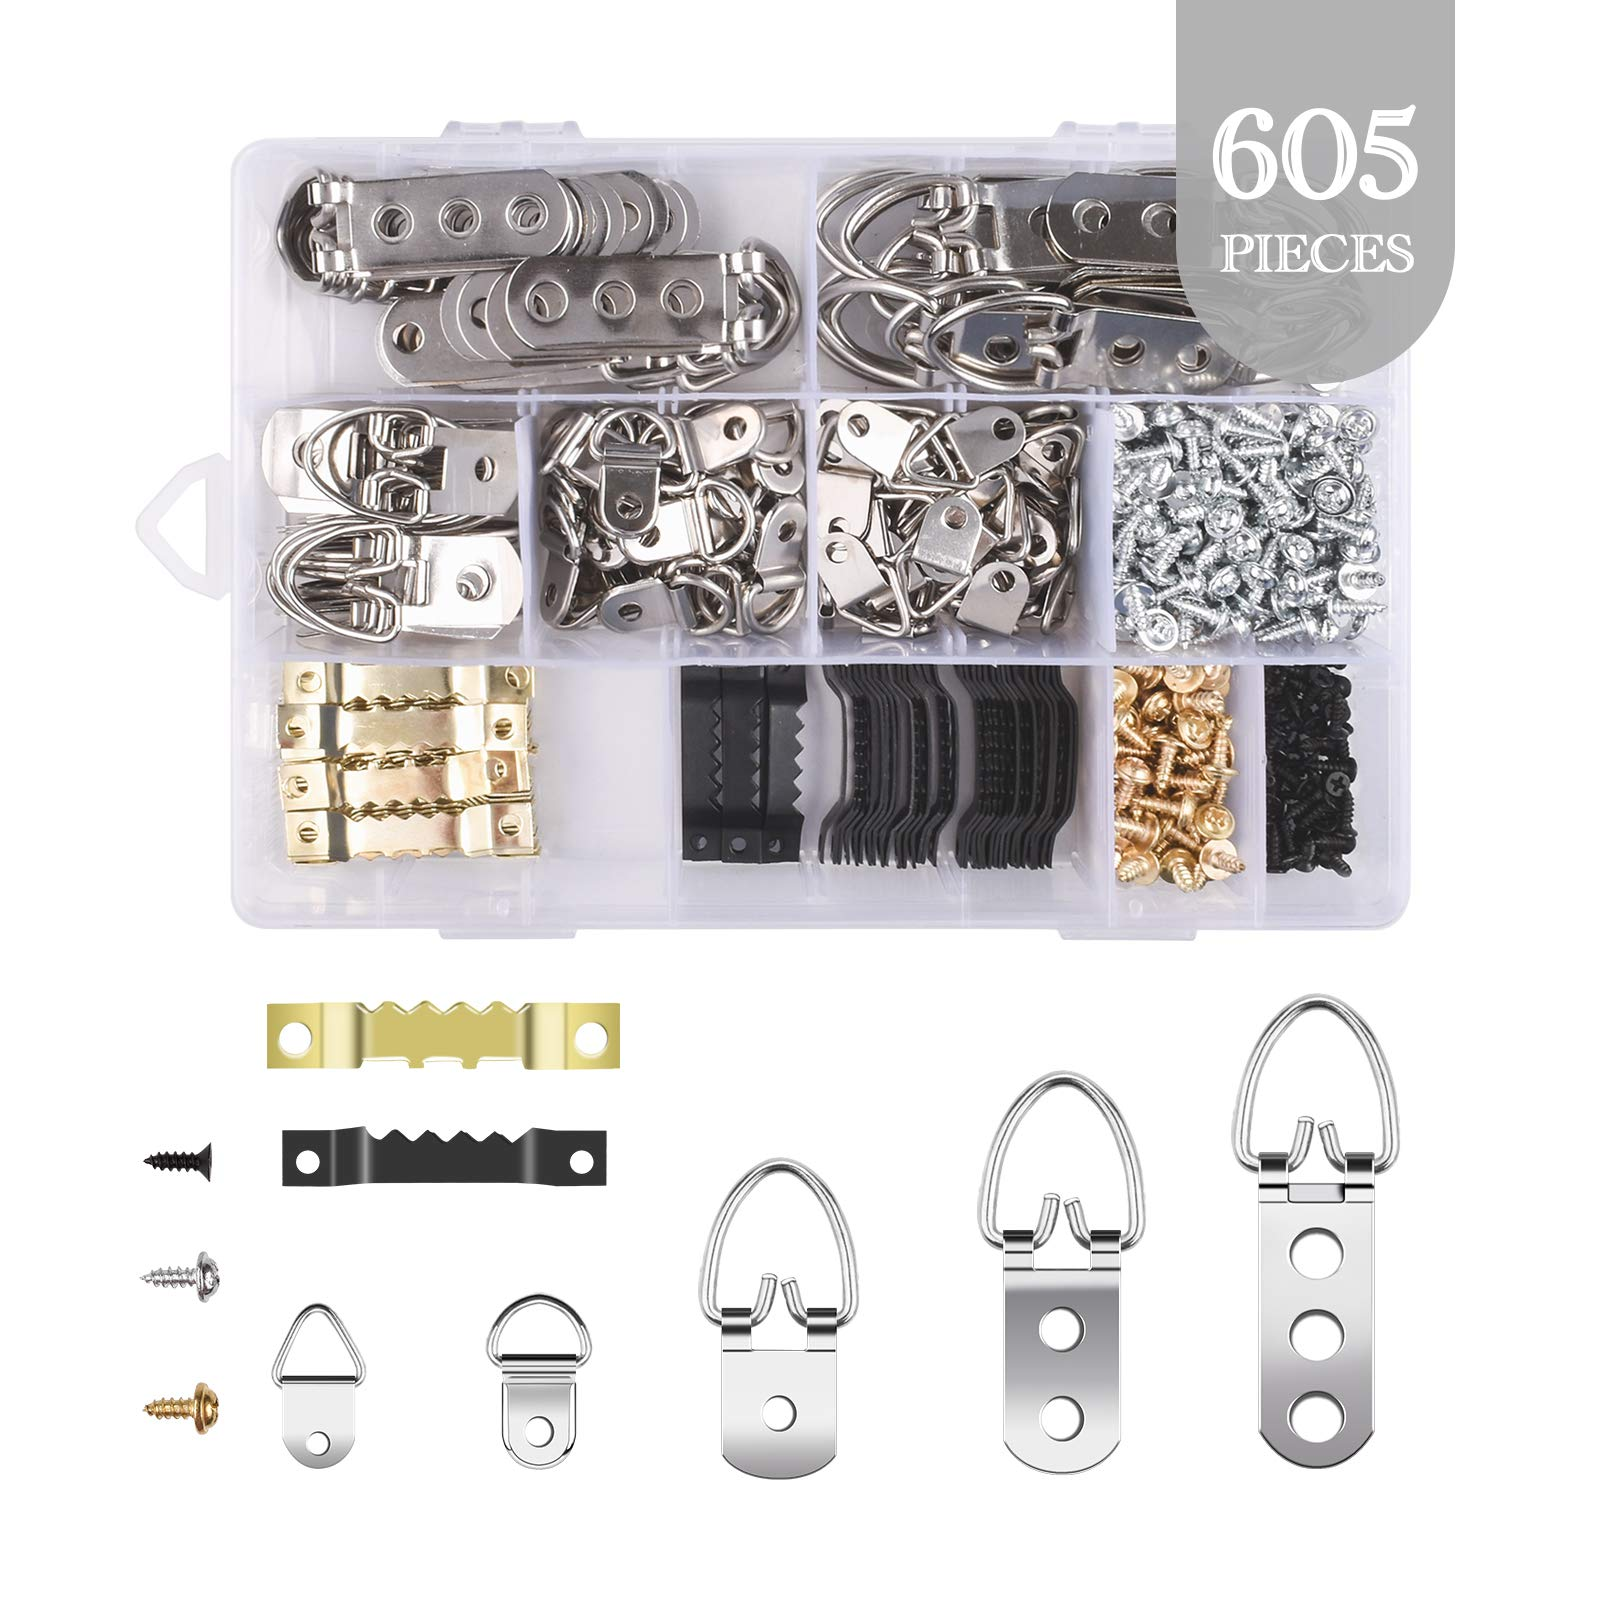 Great assortment of hangers and screws!